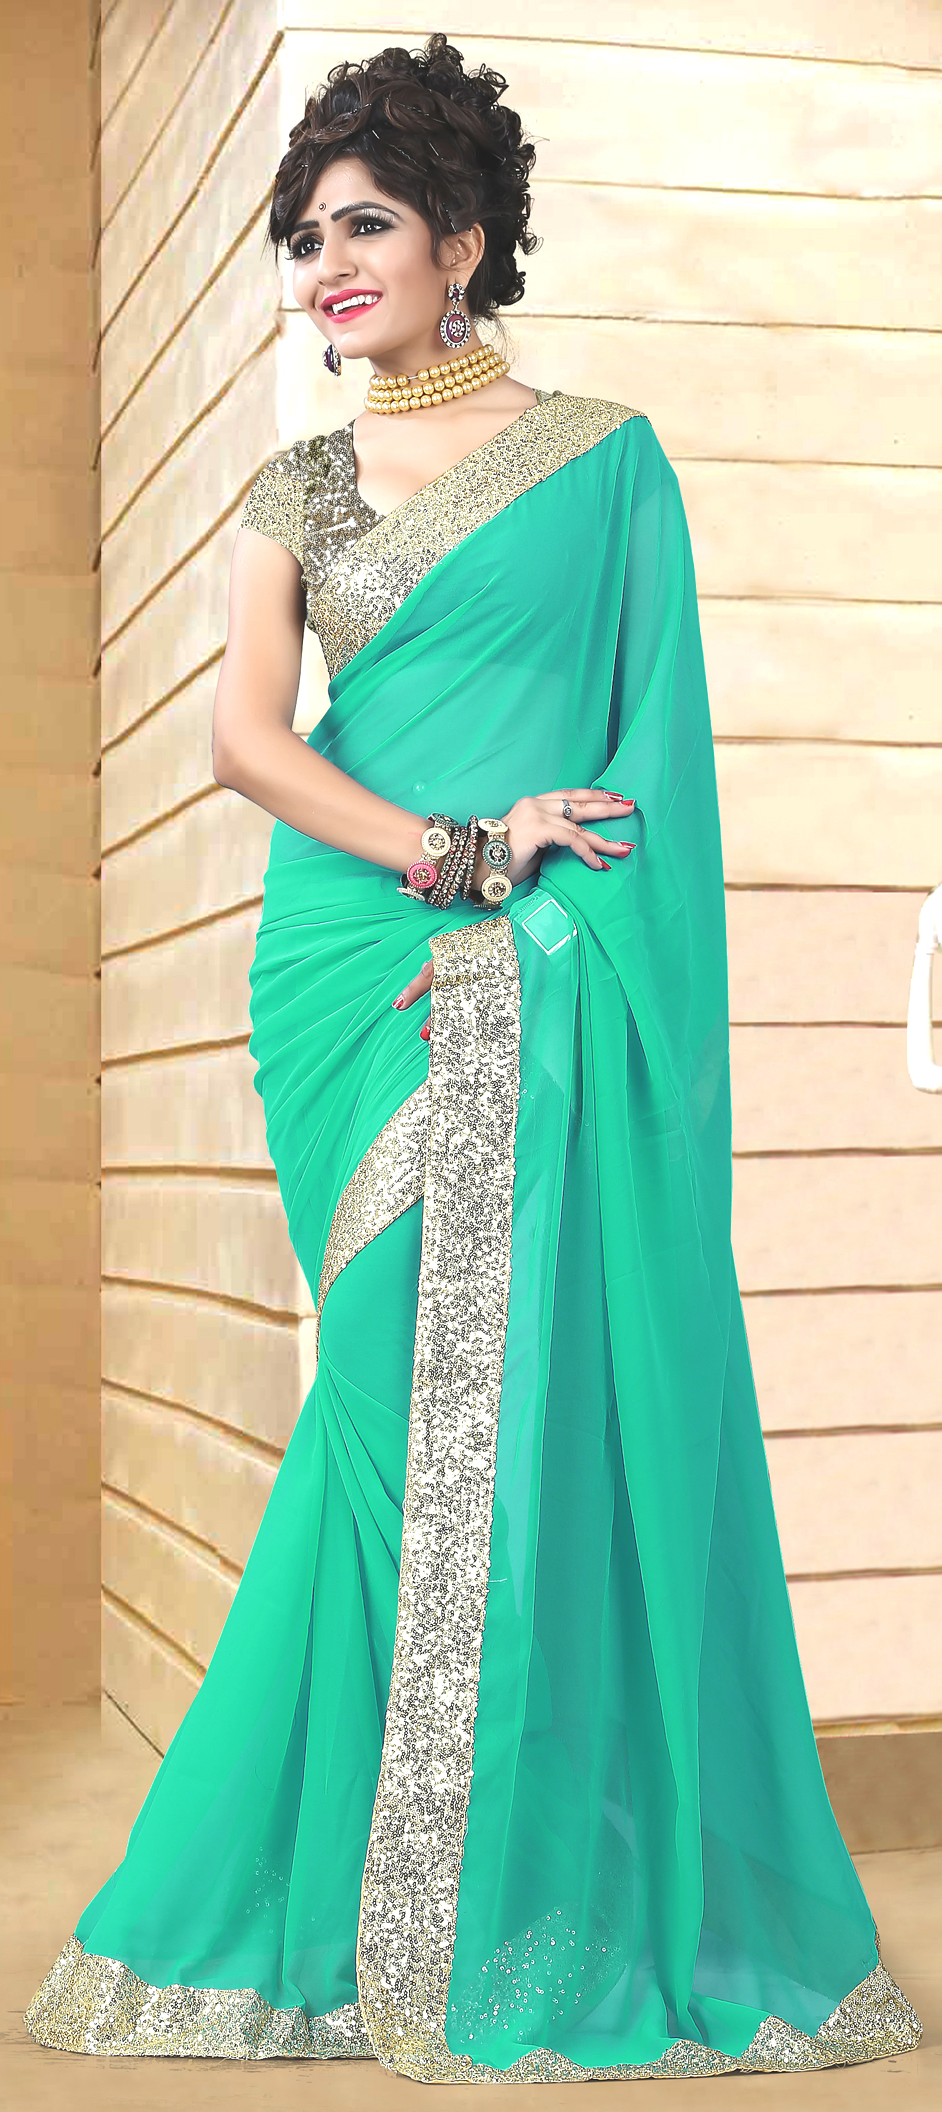 165128: Green color family Party Wear Sarees with matching ...